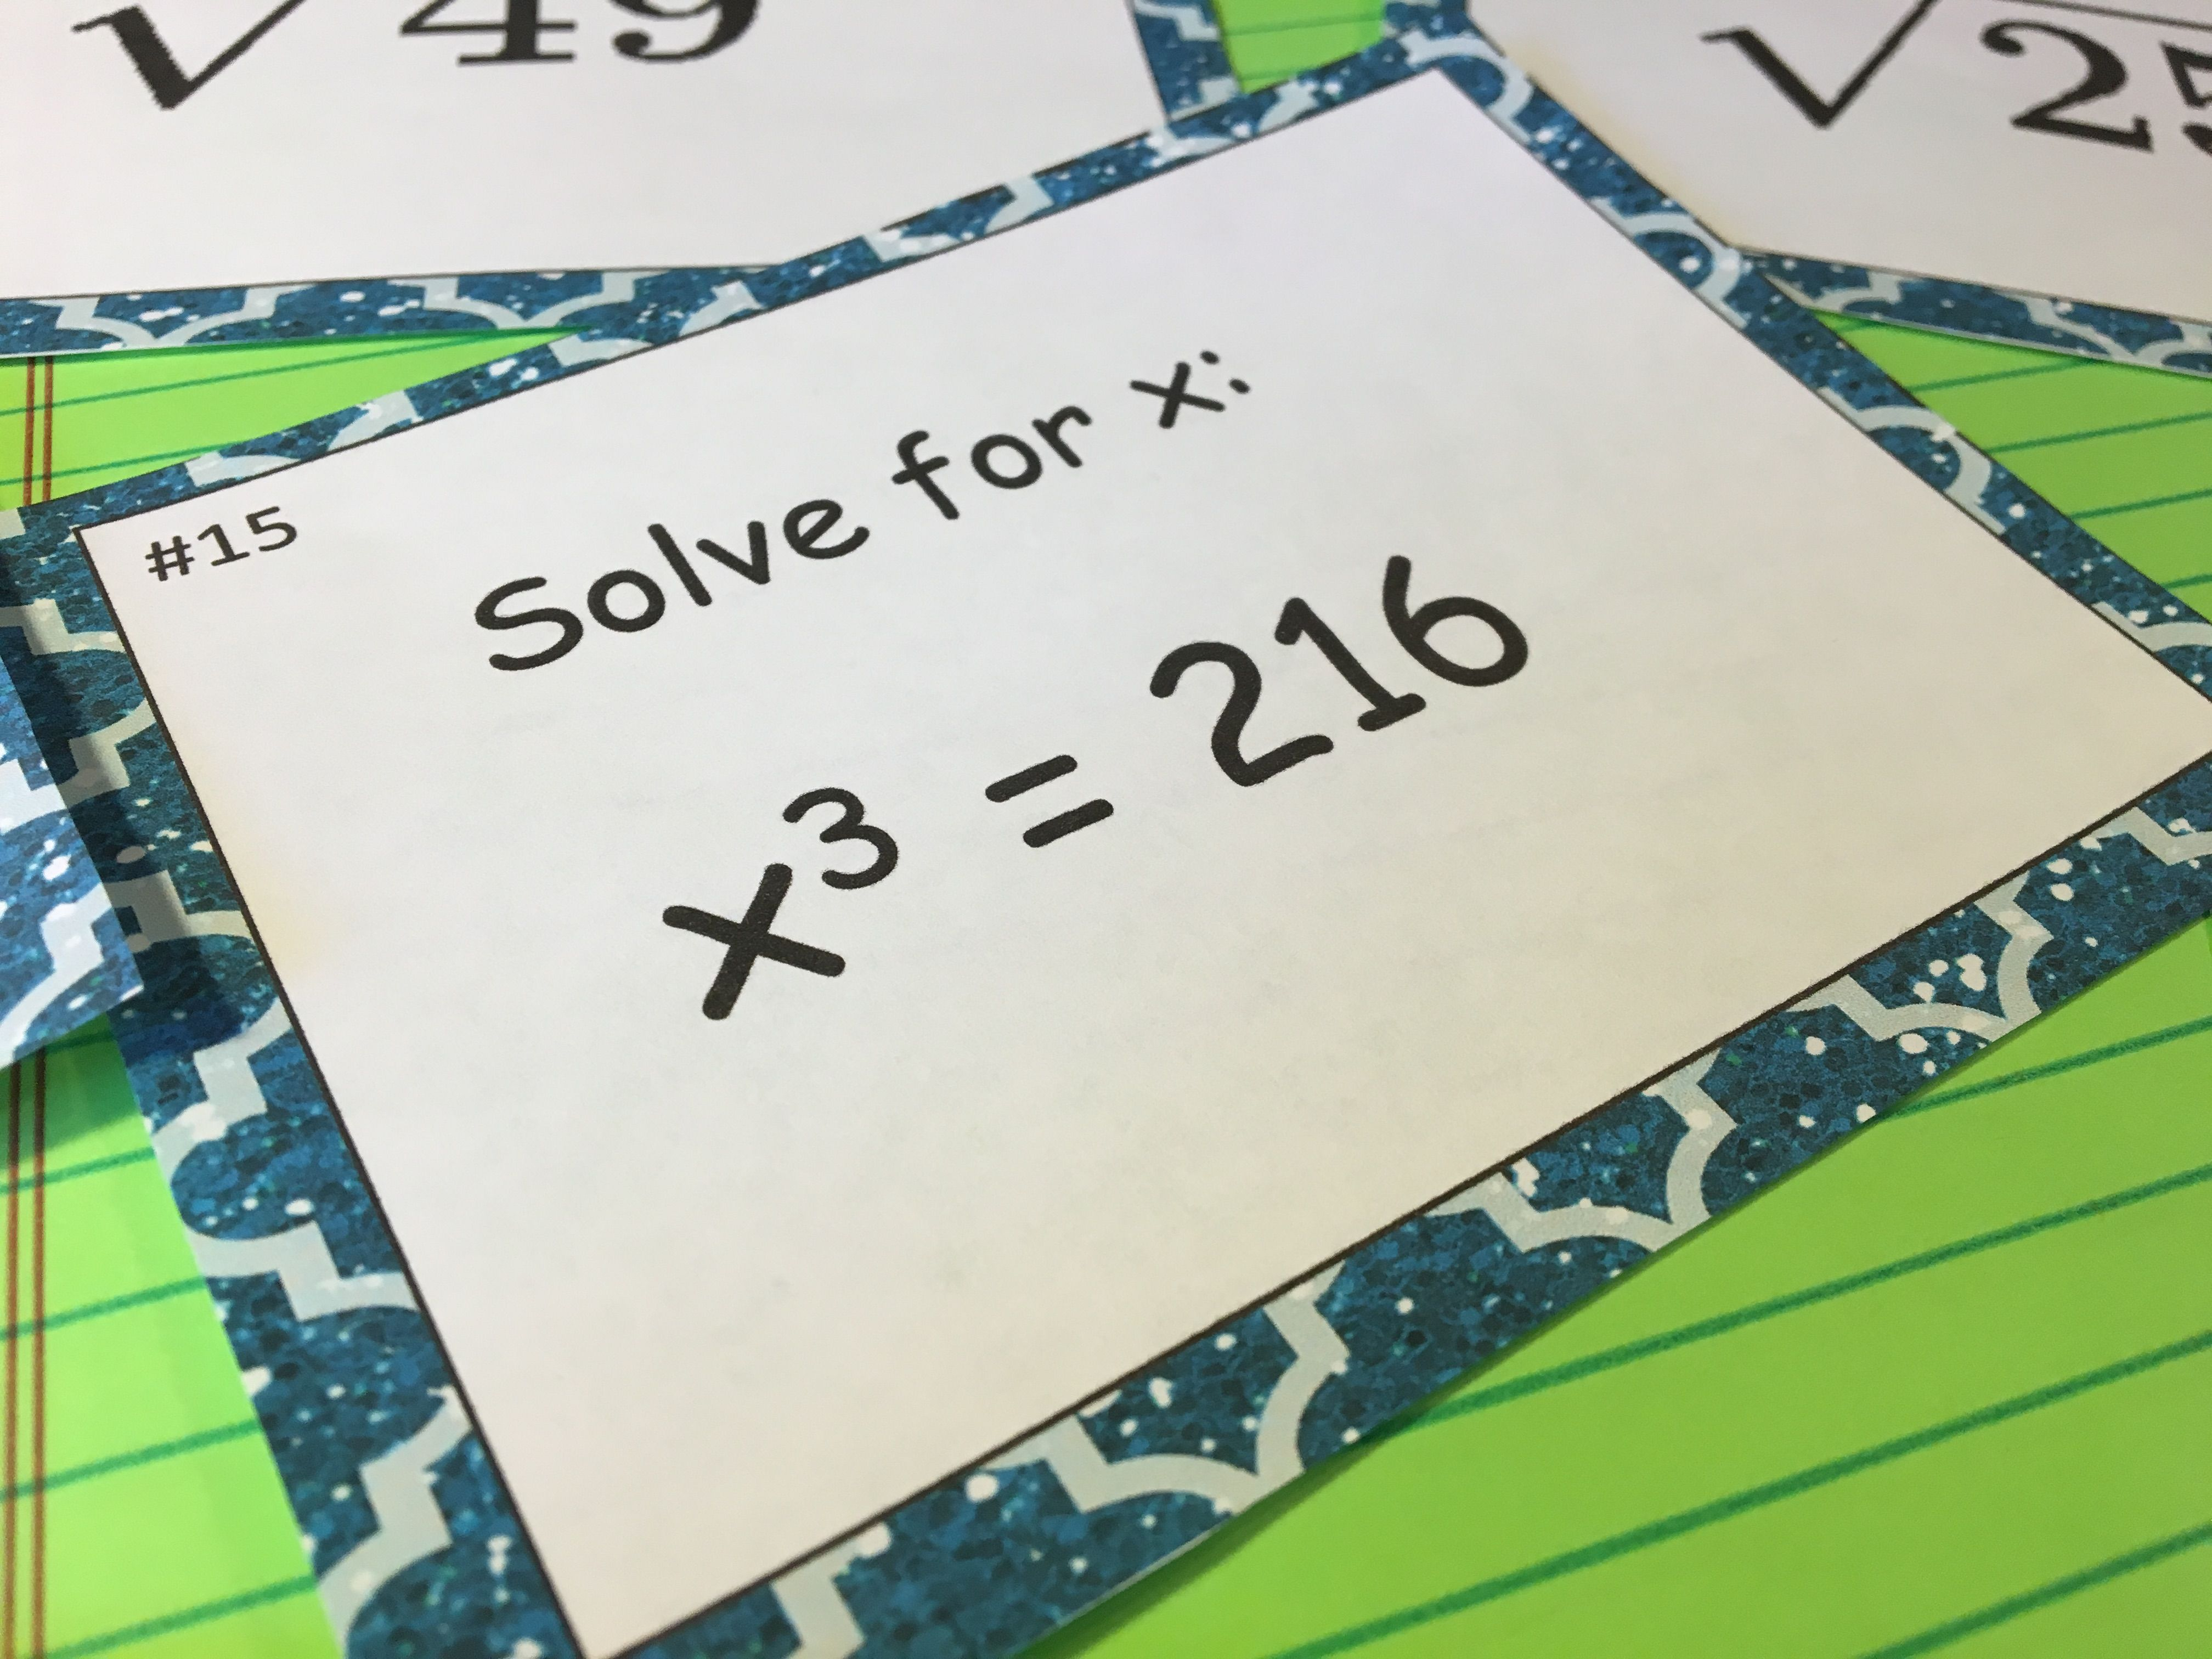 Square Roots Amp Cube Roots Task Cards With Images